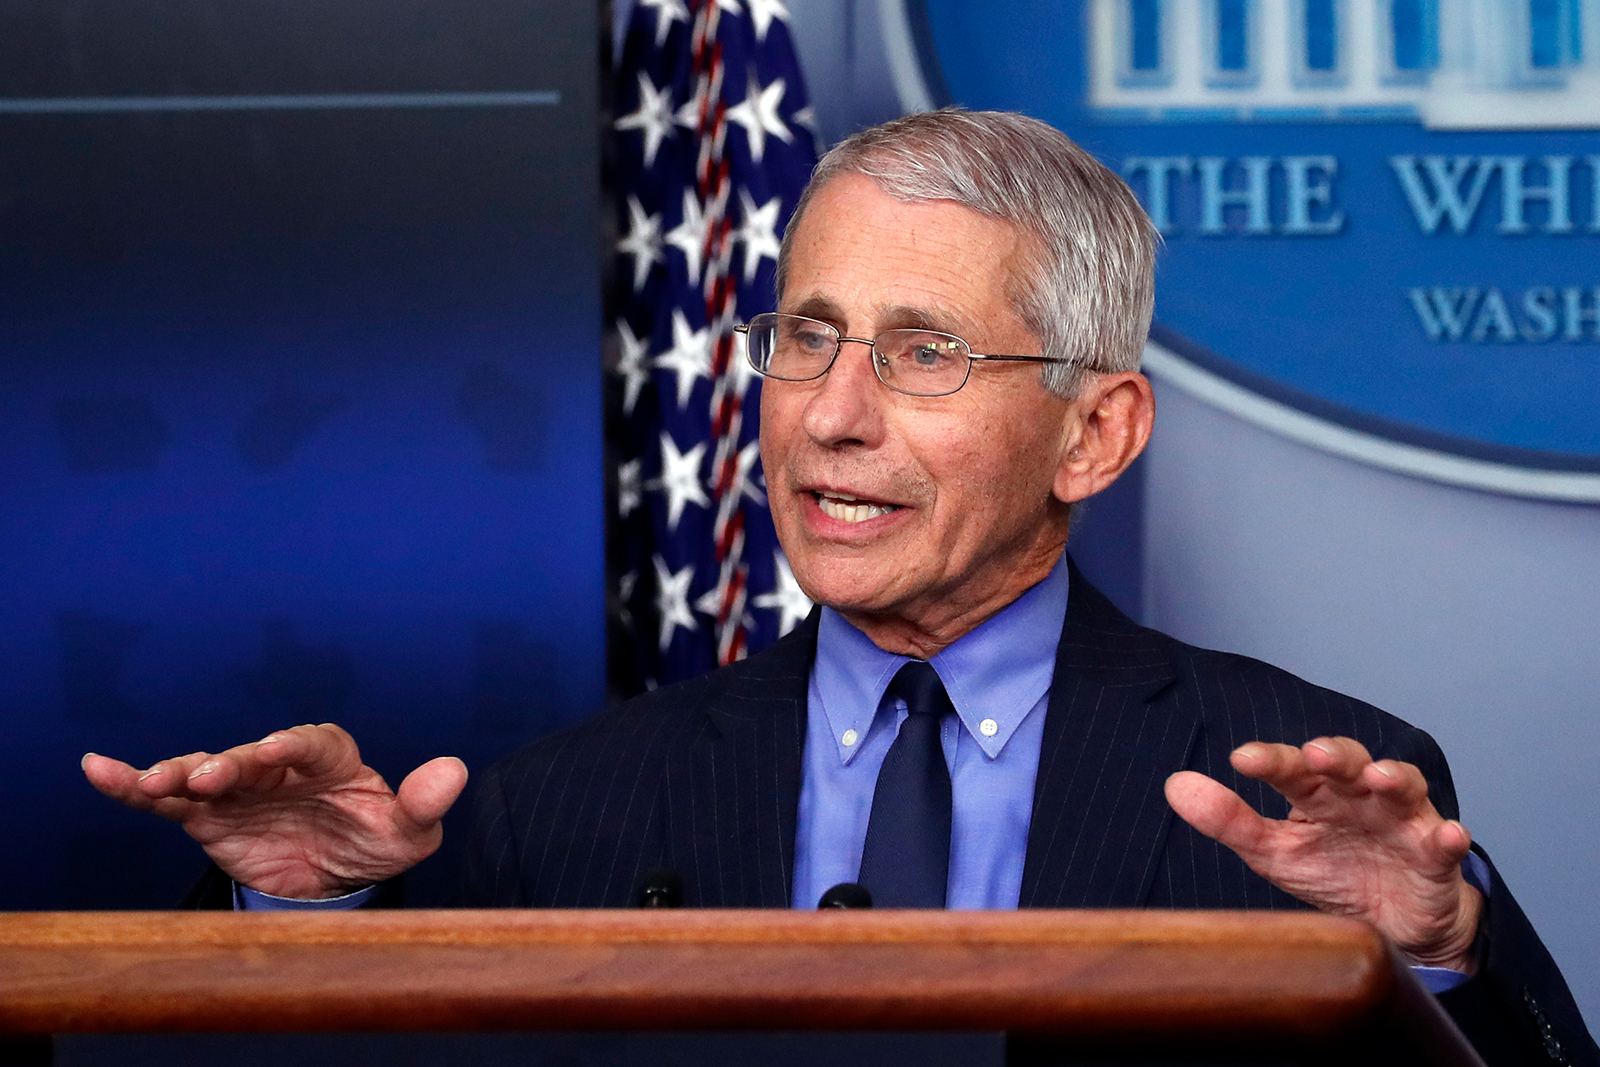 Dr. Anthony Fauci, director of the National Institute of Allergy and Infectious Diseases, speaks about the coronavirus at the White House, on April 17.